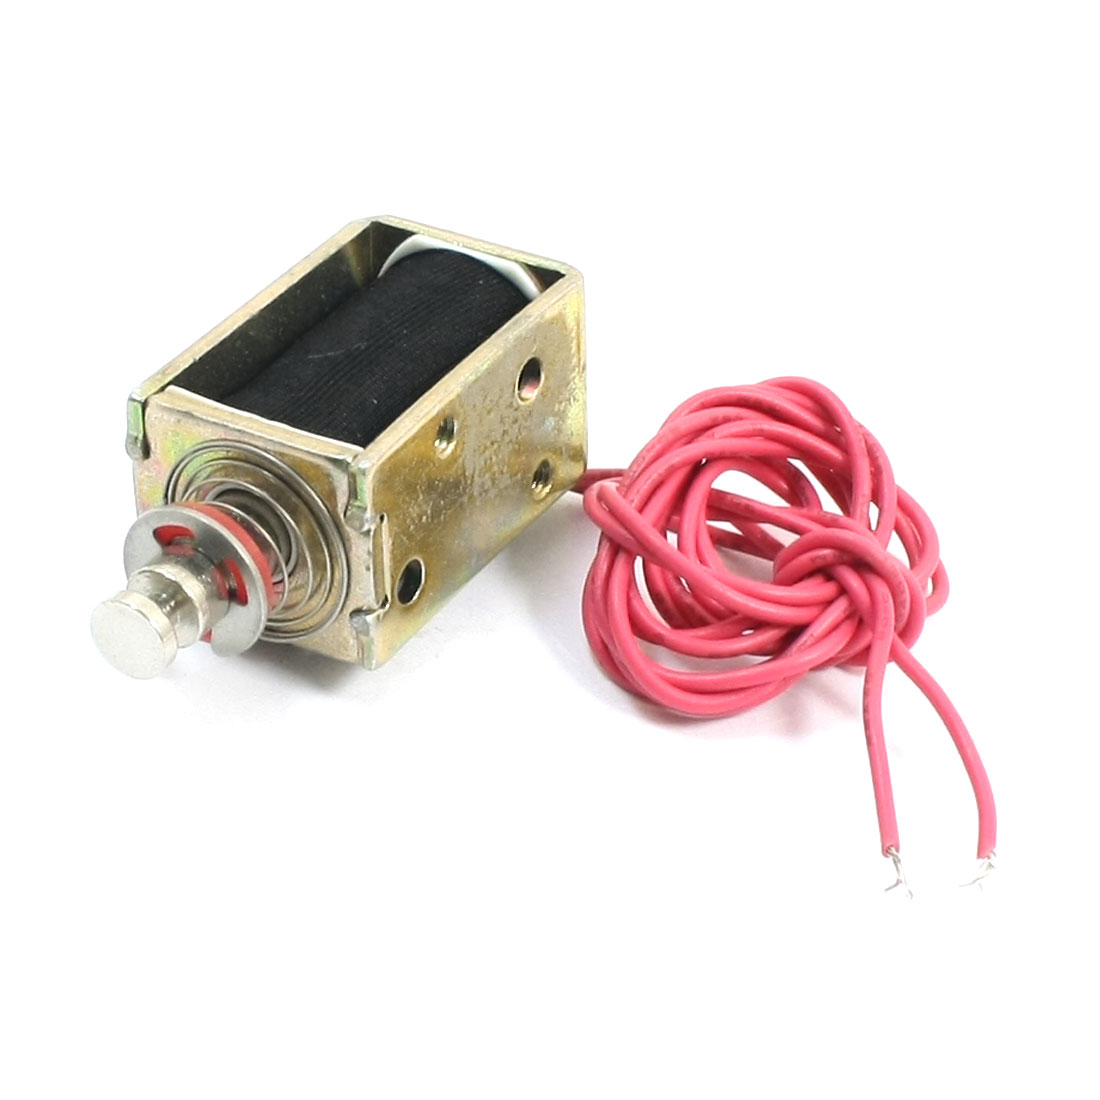 110V Pull Type 5mm 500g Open Frame Wire Connector Solenoid Electromagnet